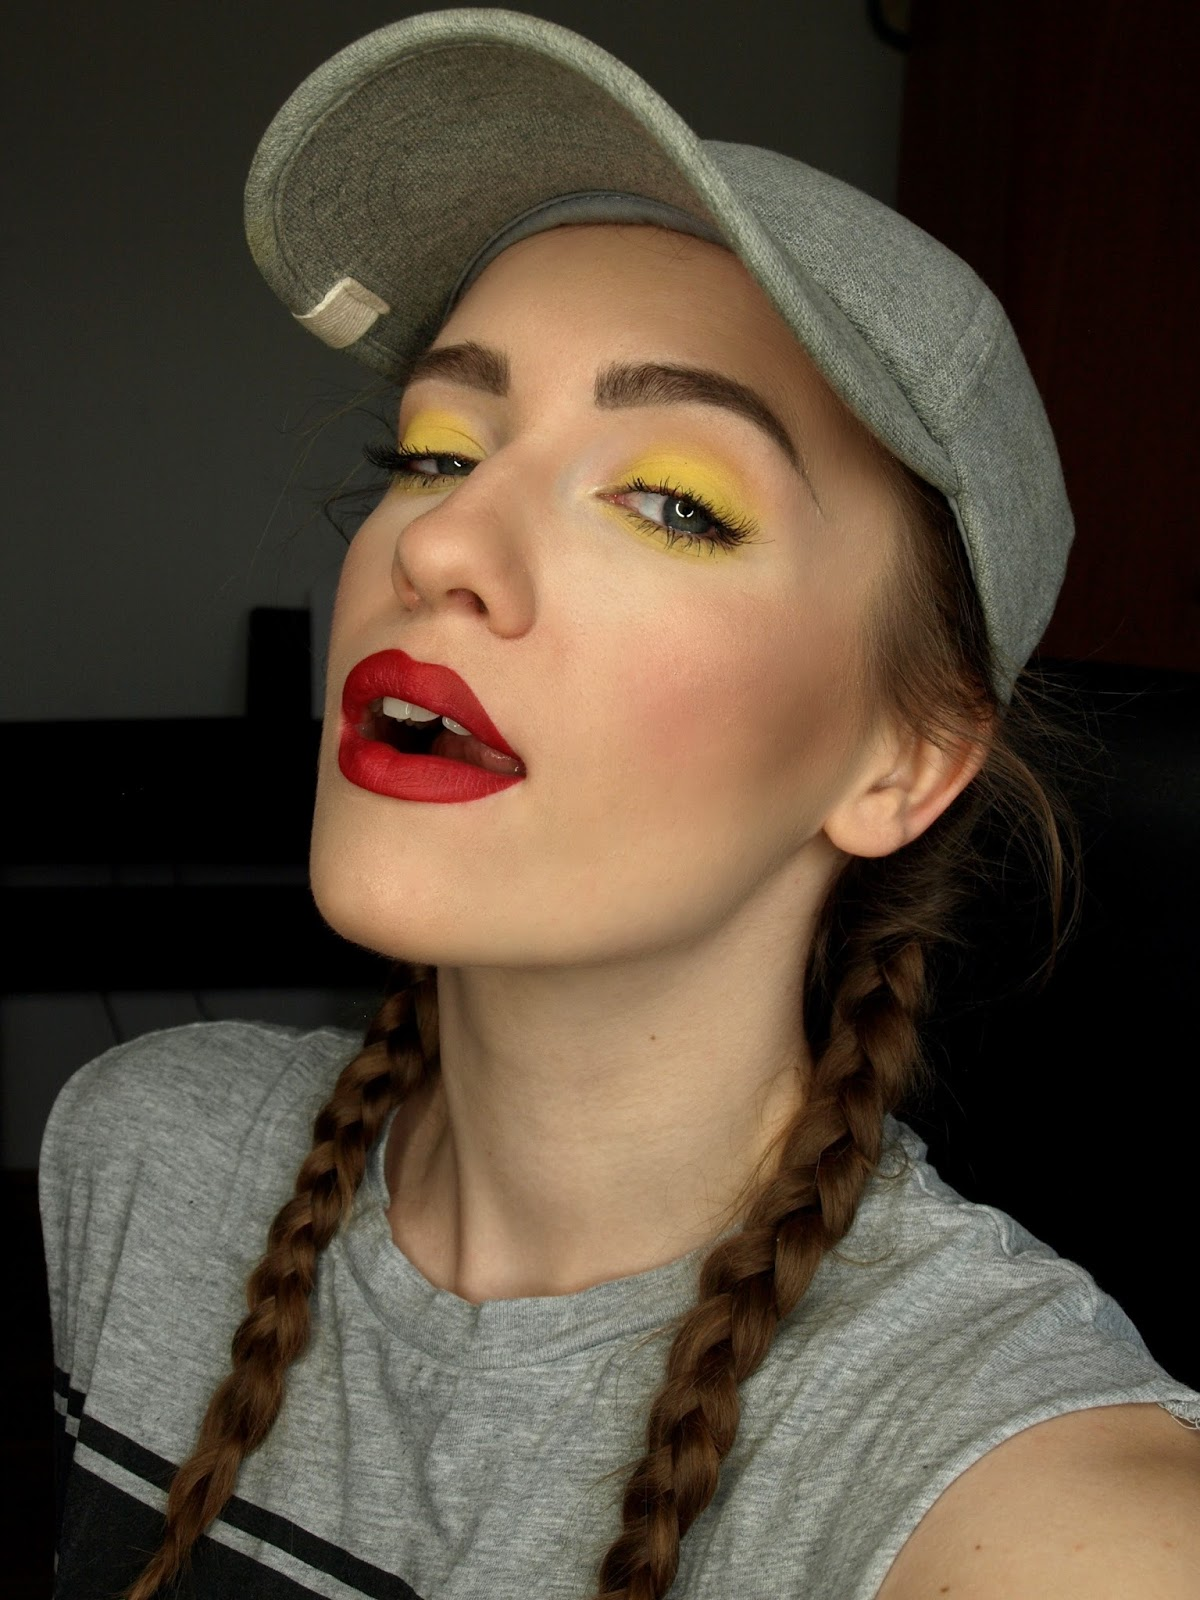 REDMYLIPS make-up blog: MY STYLE# KONTRASTOWY MAKIJAŻ ... Nyx Narcissistic